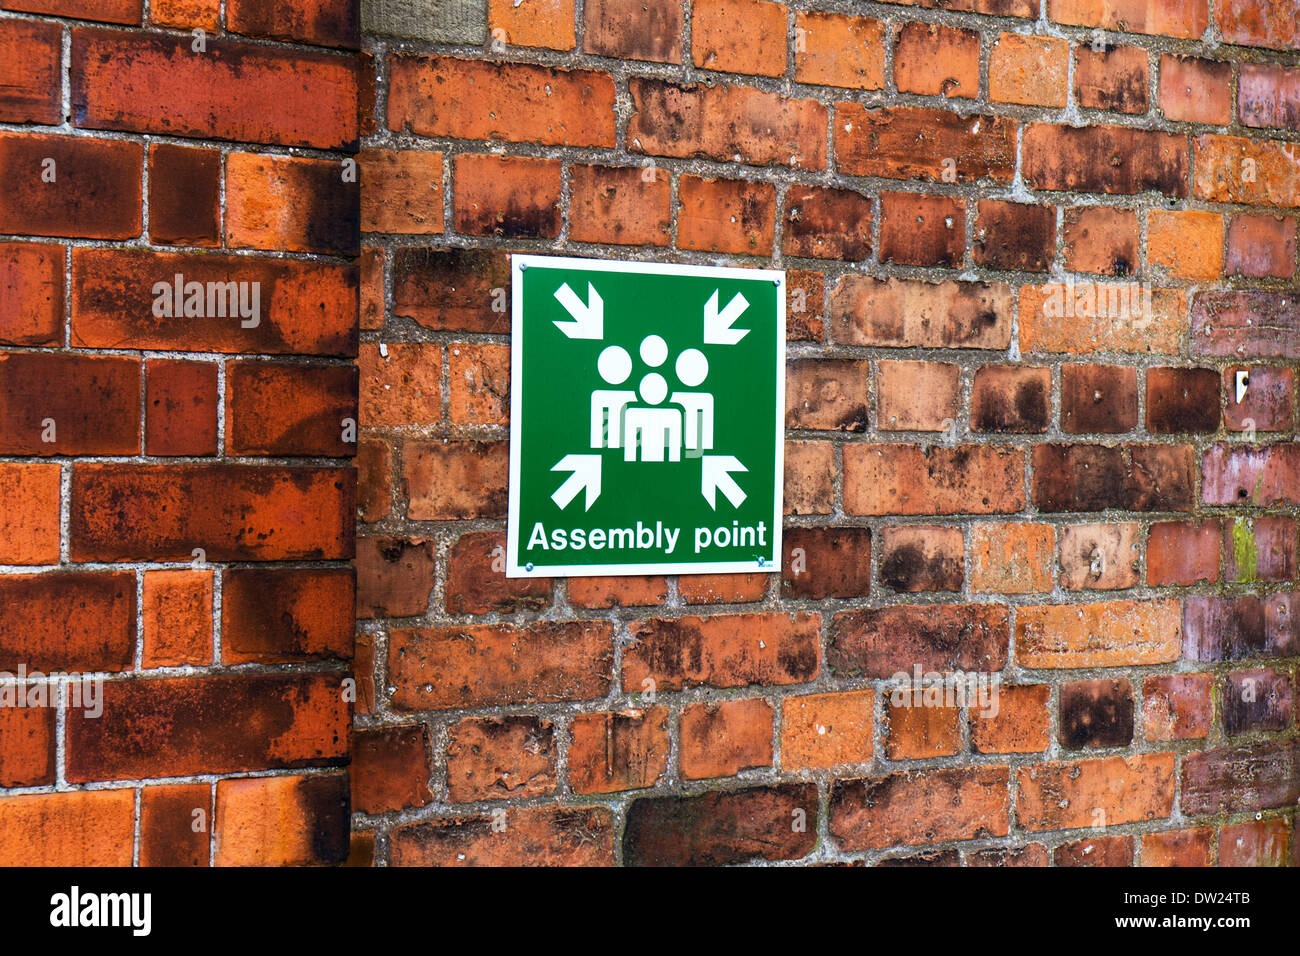 Assembly meeting point sign on wall for fire safety - Stock Image